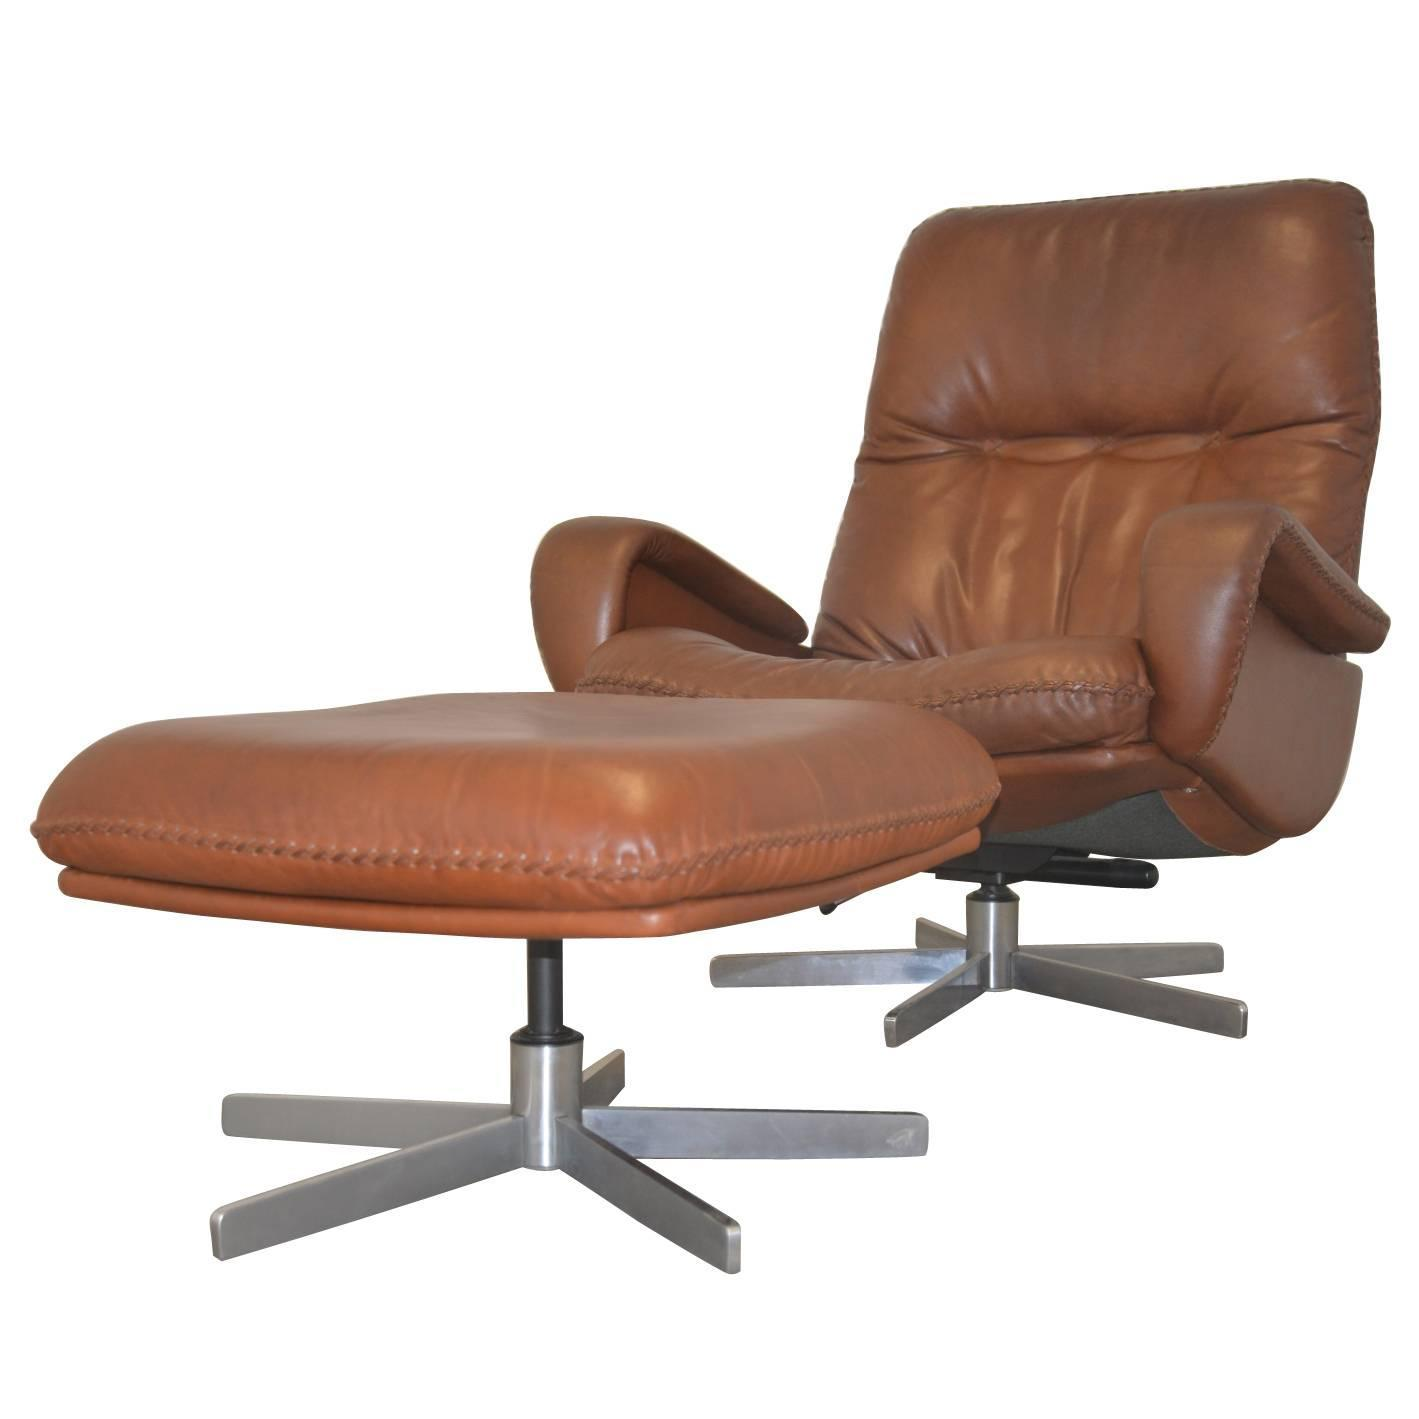 Vintage leather swivel chair - Vintage De Sede S 231 James Bond Swivel Armchair With Ottoman 1960s For Sale At 1stdibs